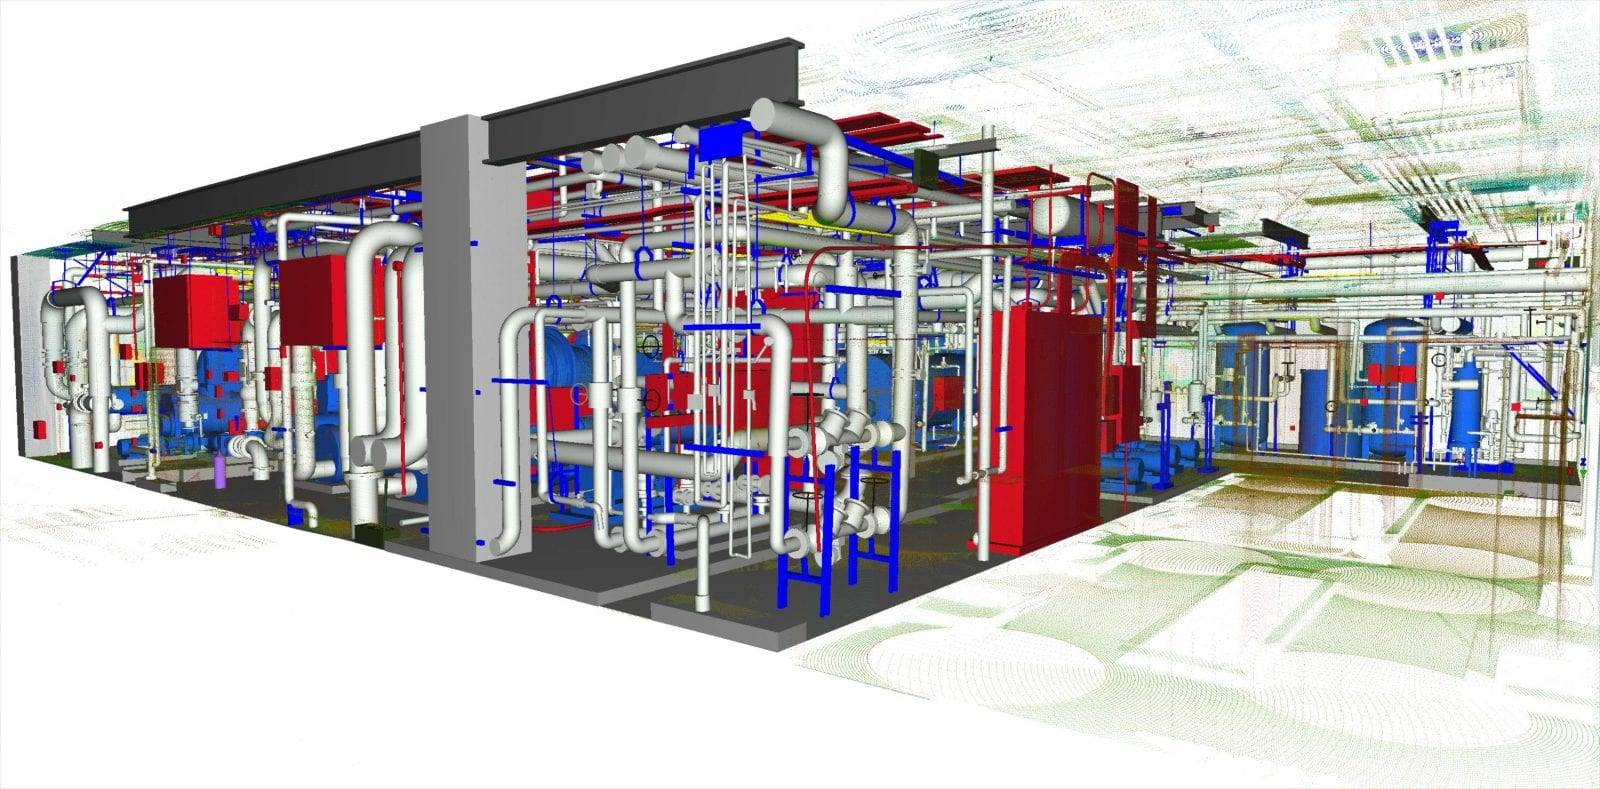 3d scan of a mechanical room